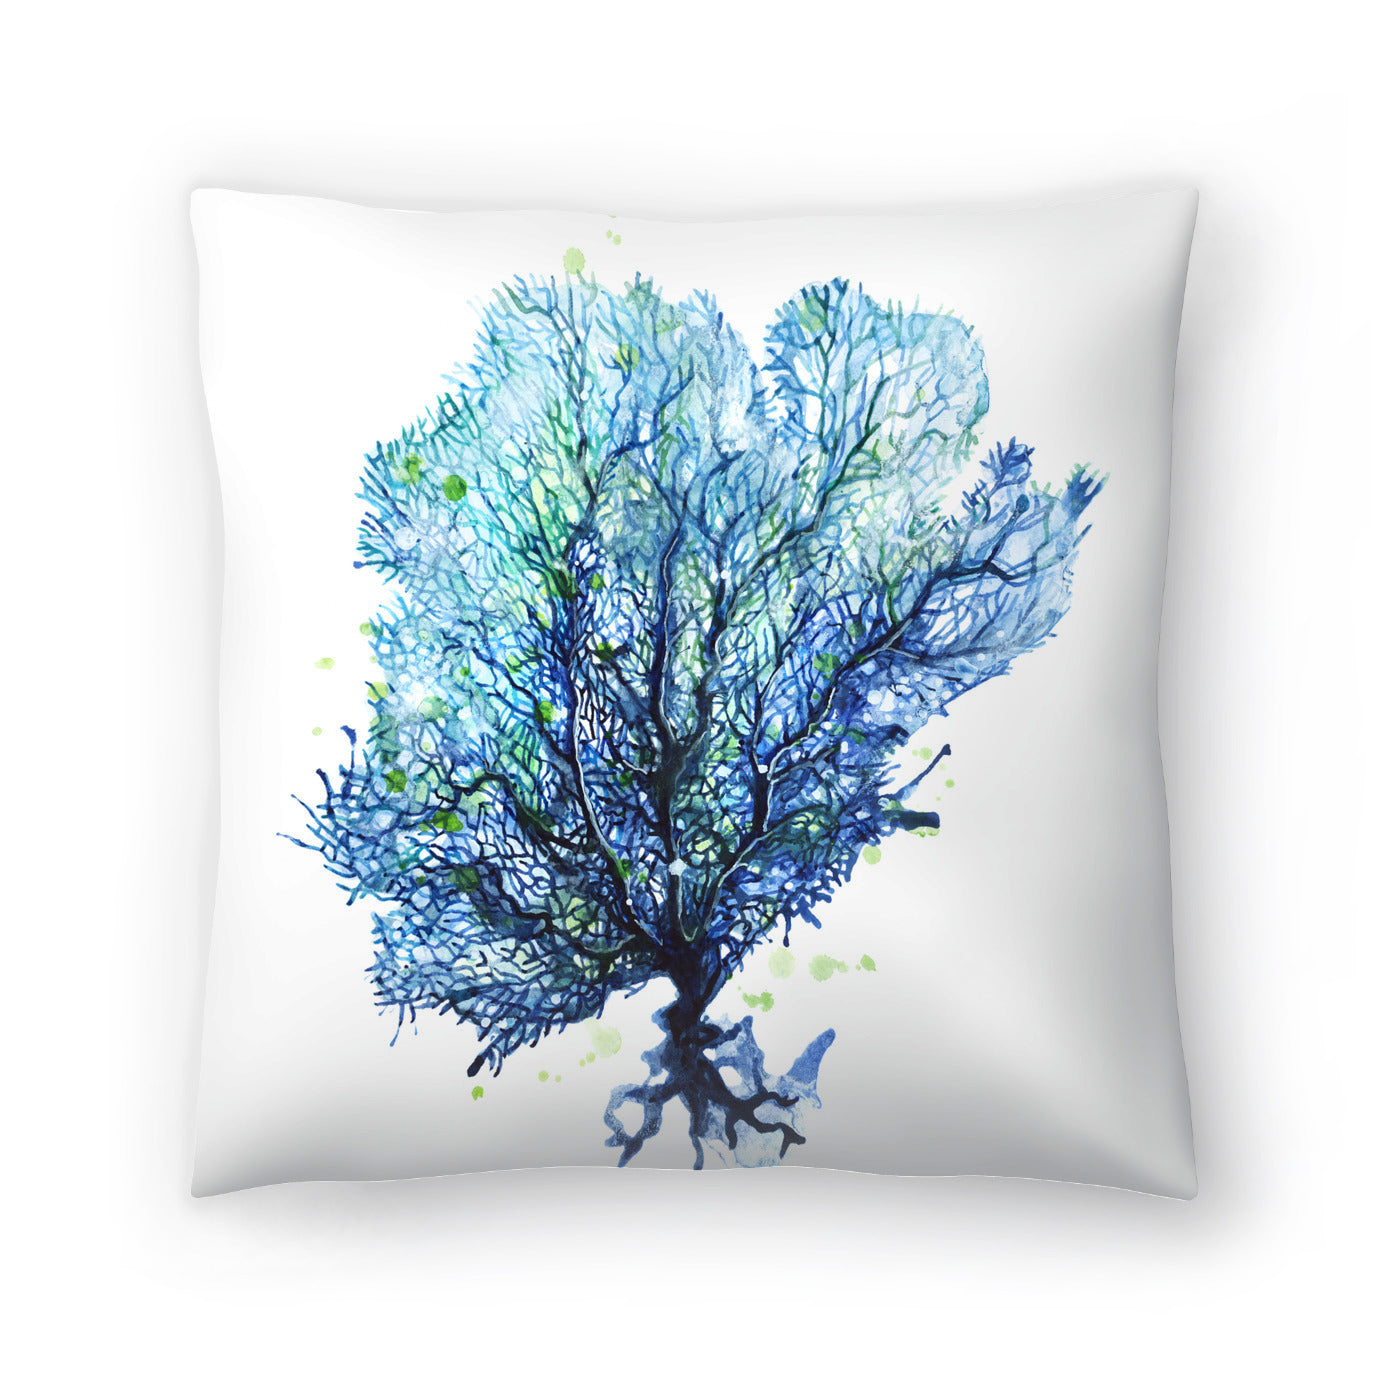 Sea Fan Aqua by Sam Nagel Decorative Pillow - Decorative Pillow - Americanflat